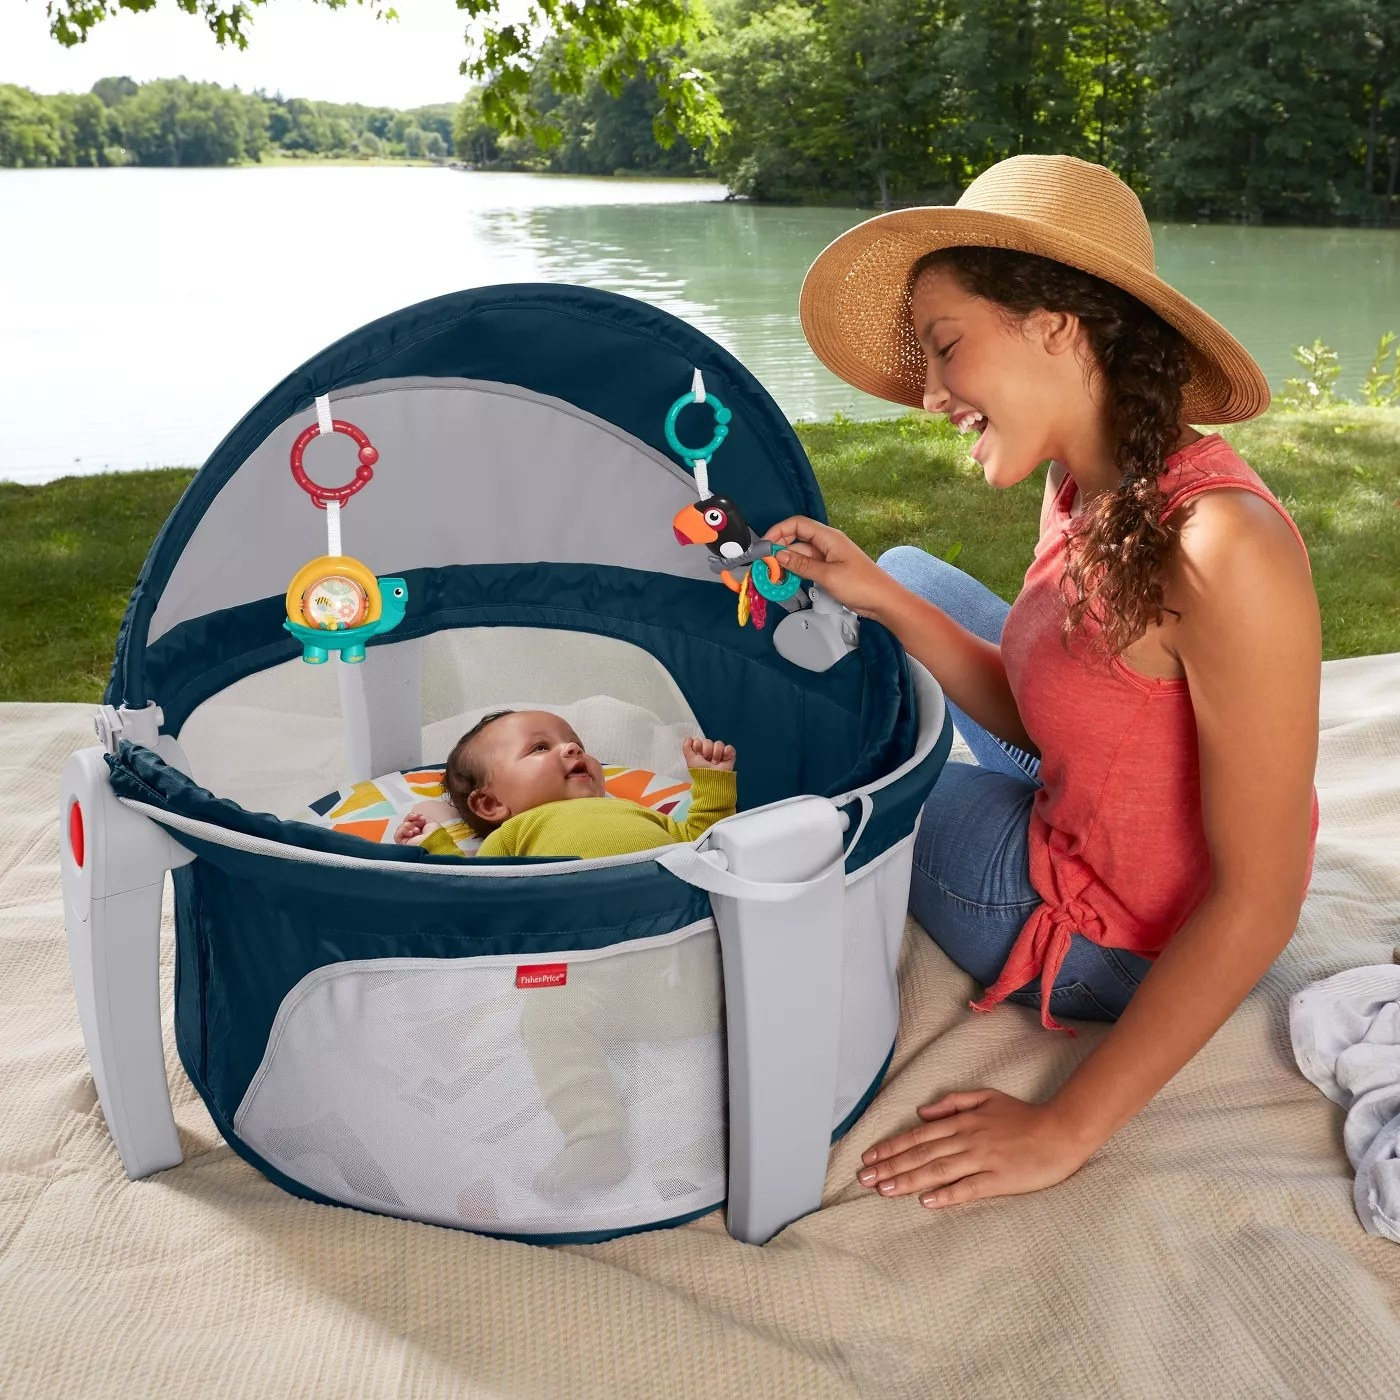 2-in-1 portable infant play space and napping spot with a canopy and two removable toys